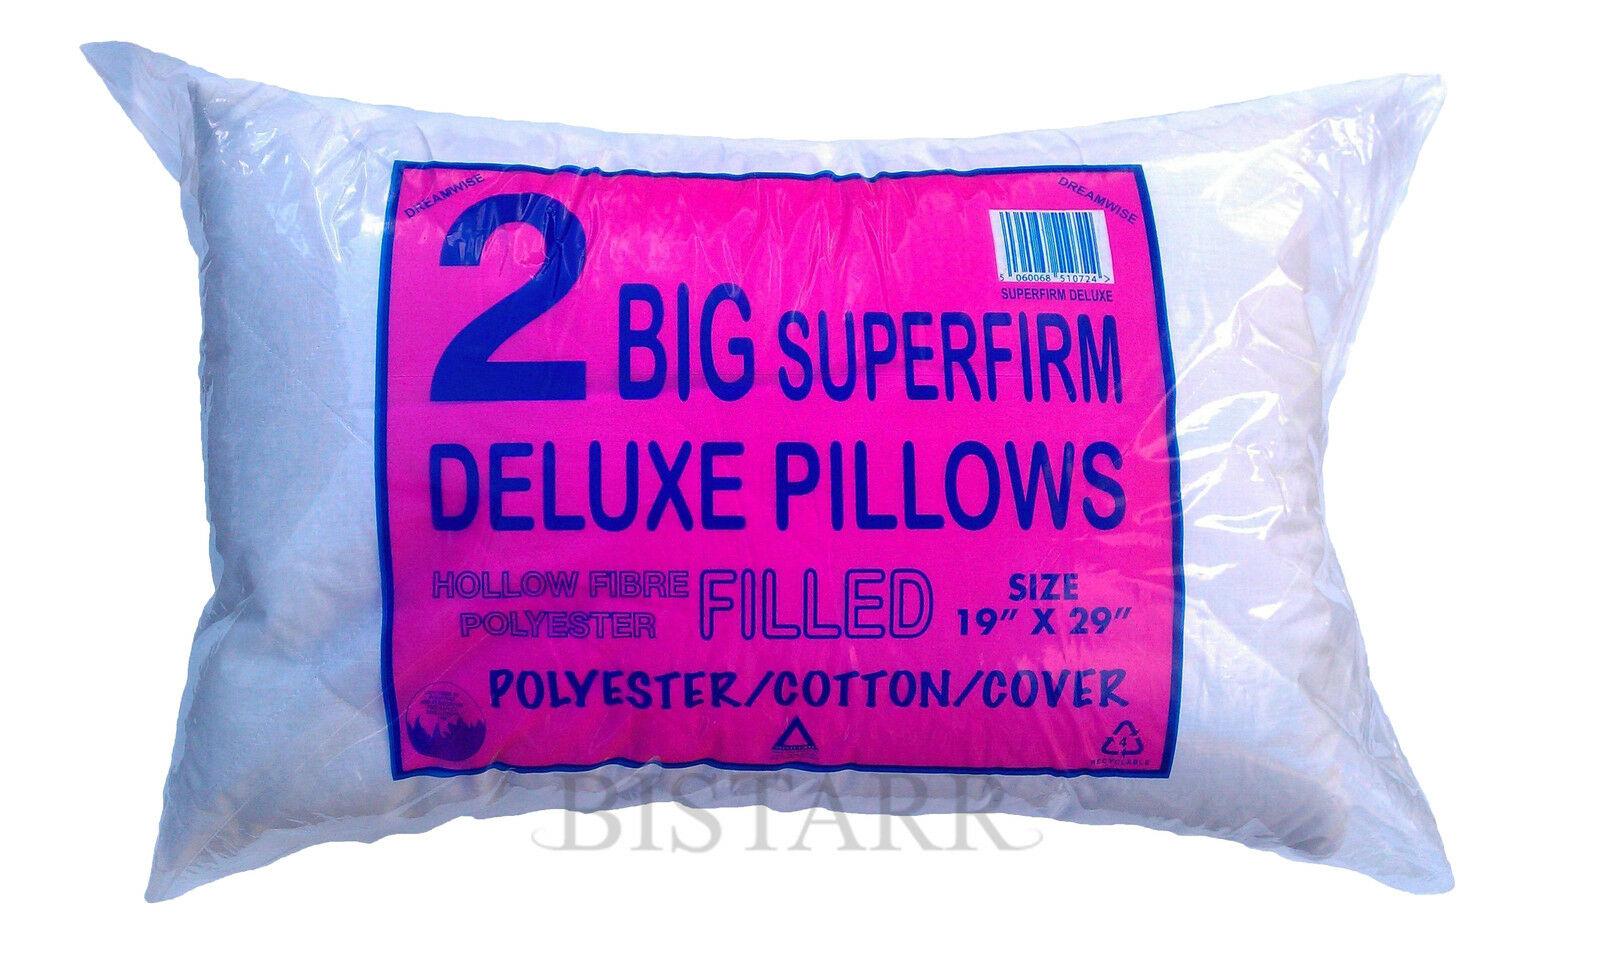 Firm Support Large Quilted Pillow Bounce Back Pillows OR Duvet Tog Memory Foam